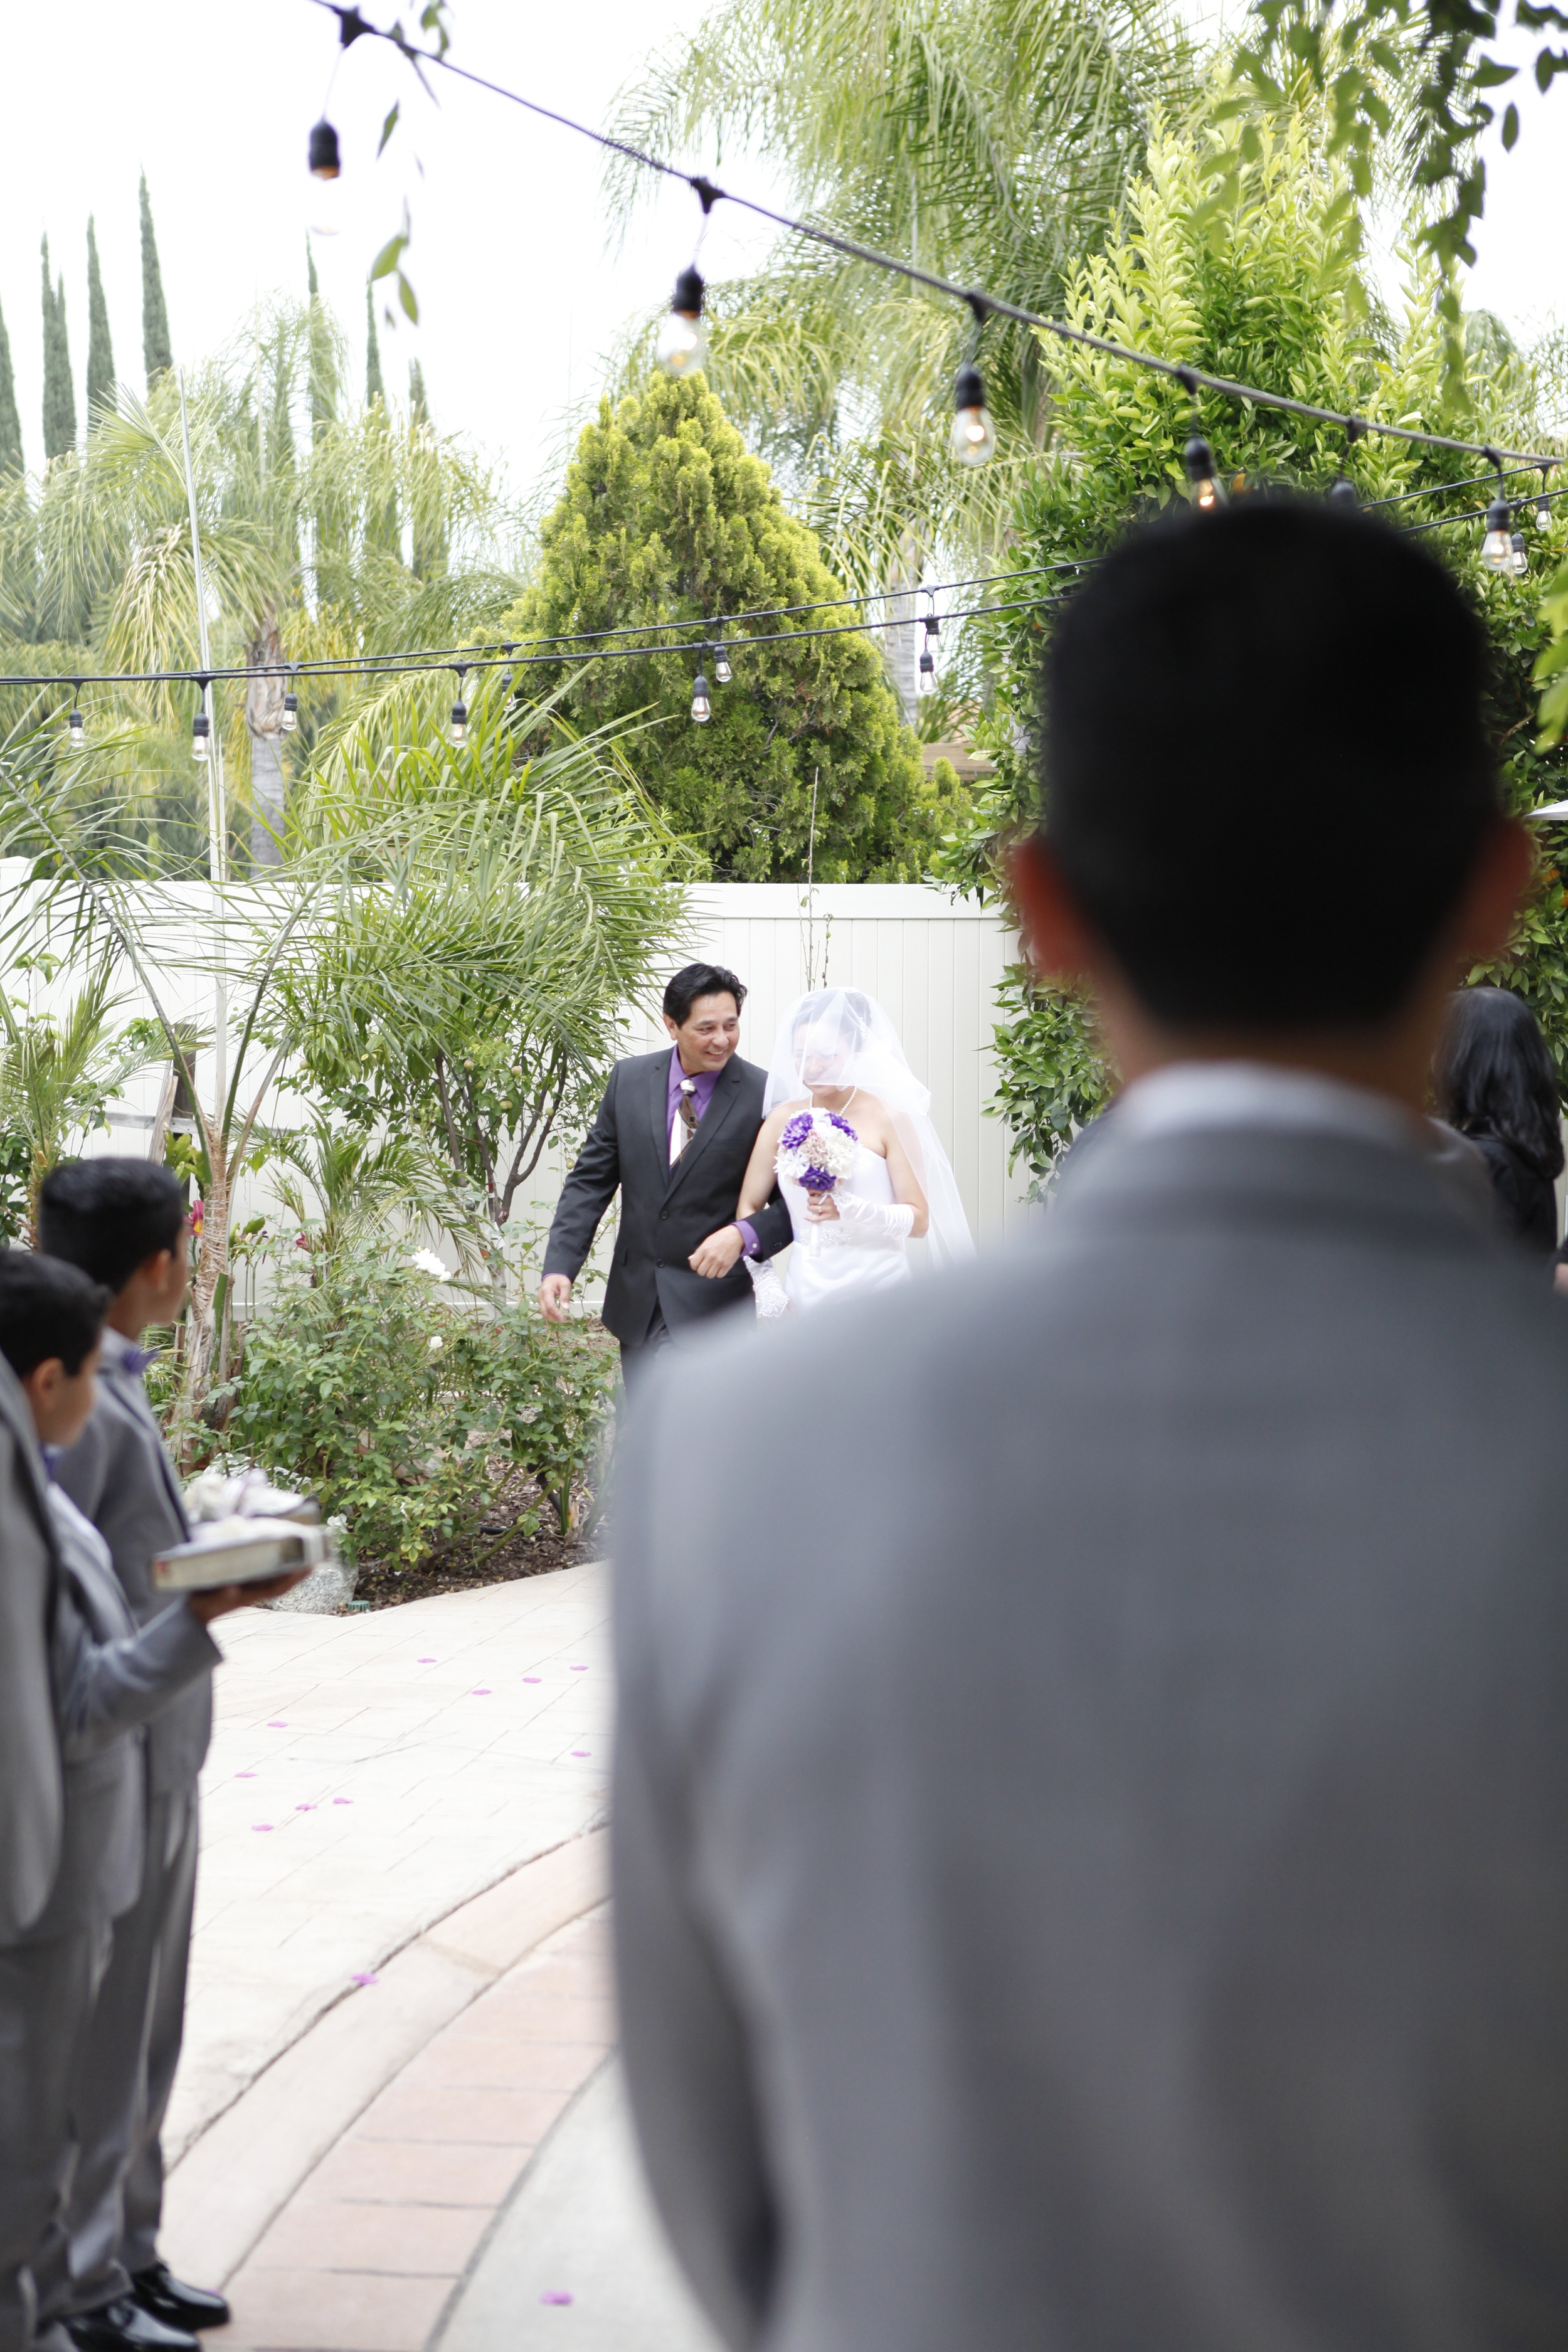 From the Groom's Eyes